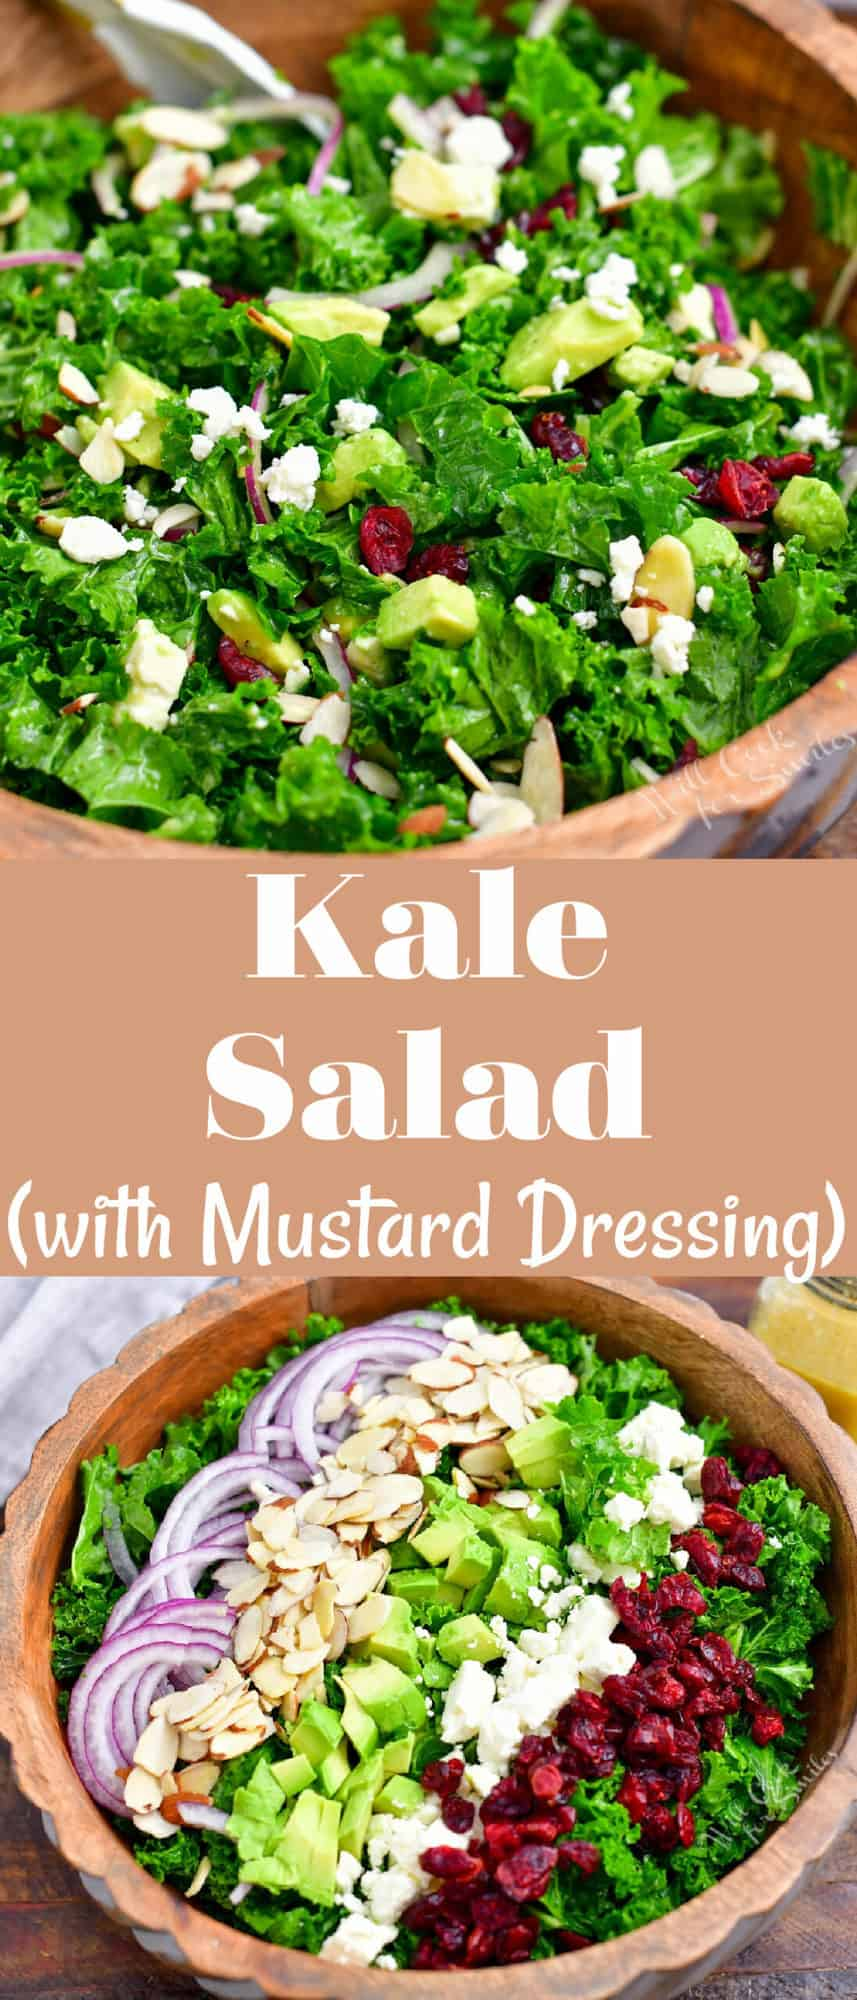 titled Pinterest photo (and shown): Kale Salad with Mustard Dressing